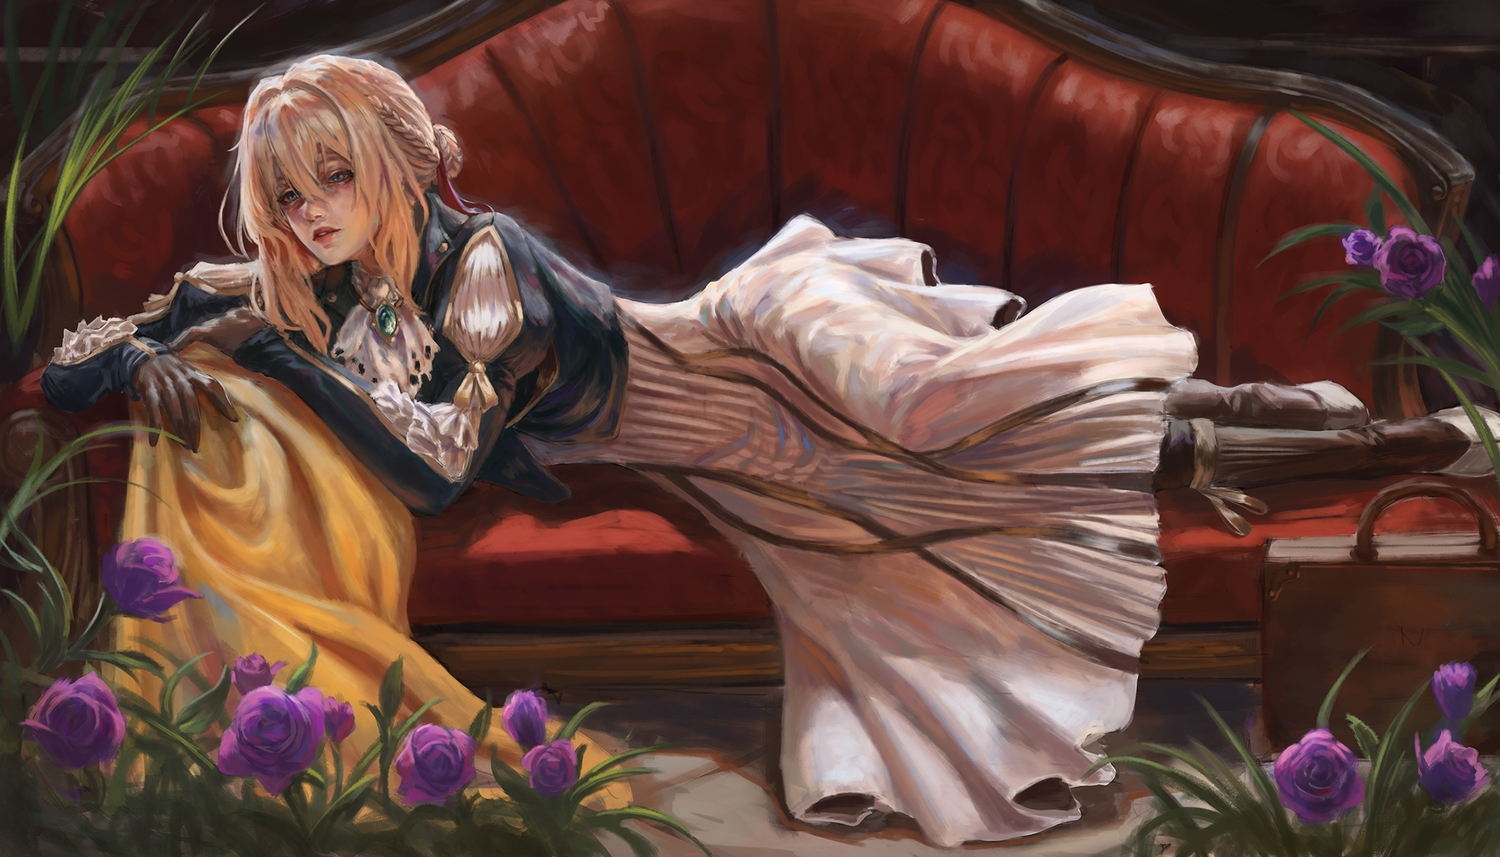 blonde_hair blue_eyes braids couch dress flowers gloves gold_can realistic violet_evergarden violet_evergarden_(character)